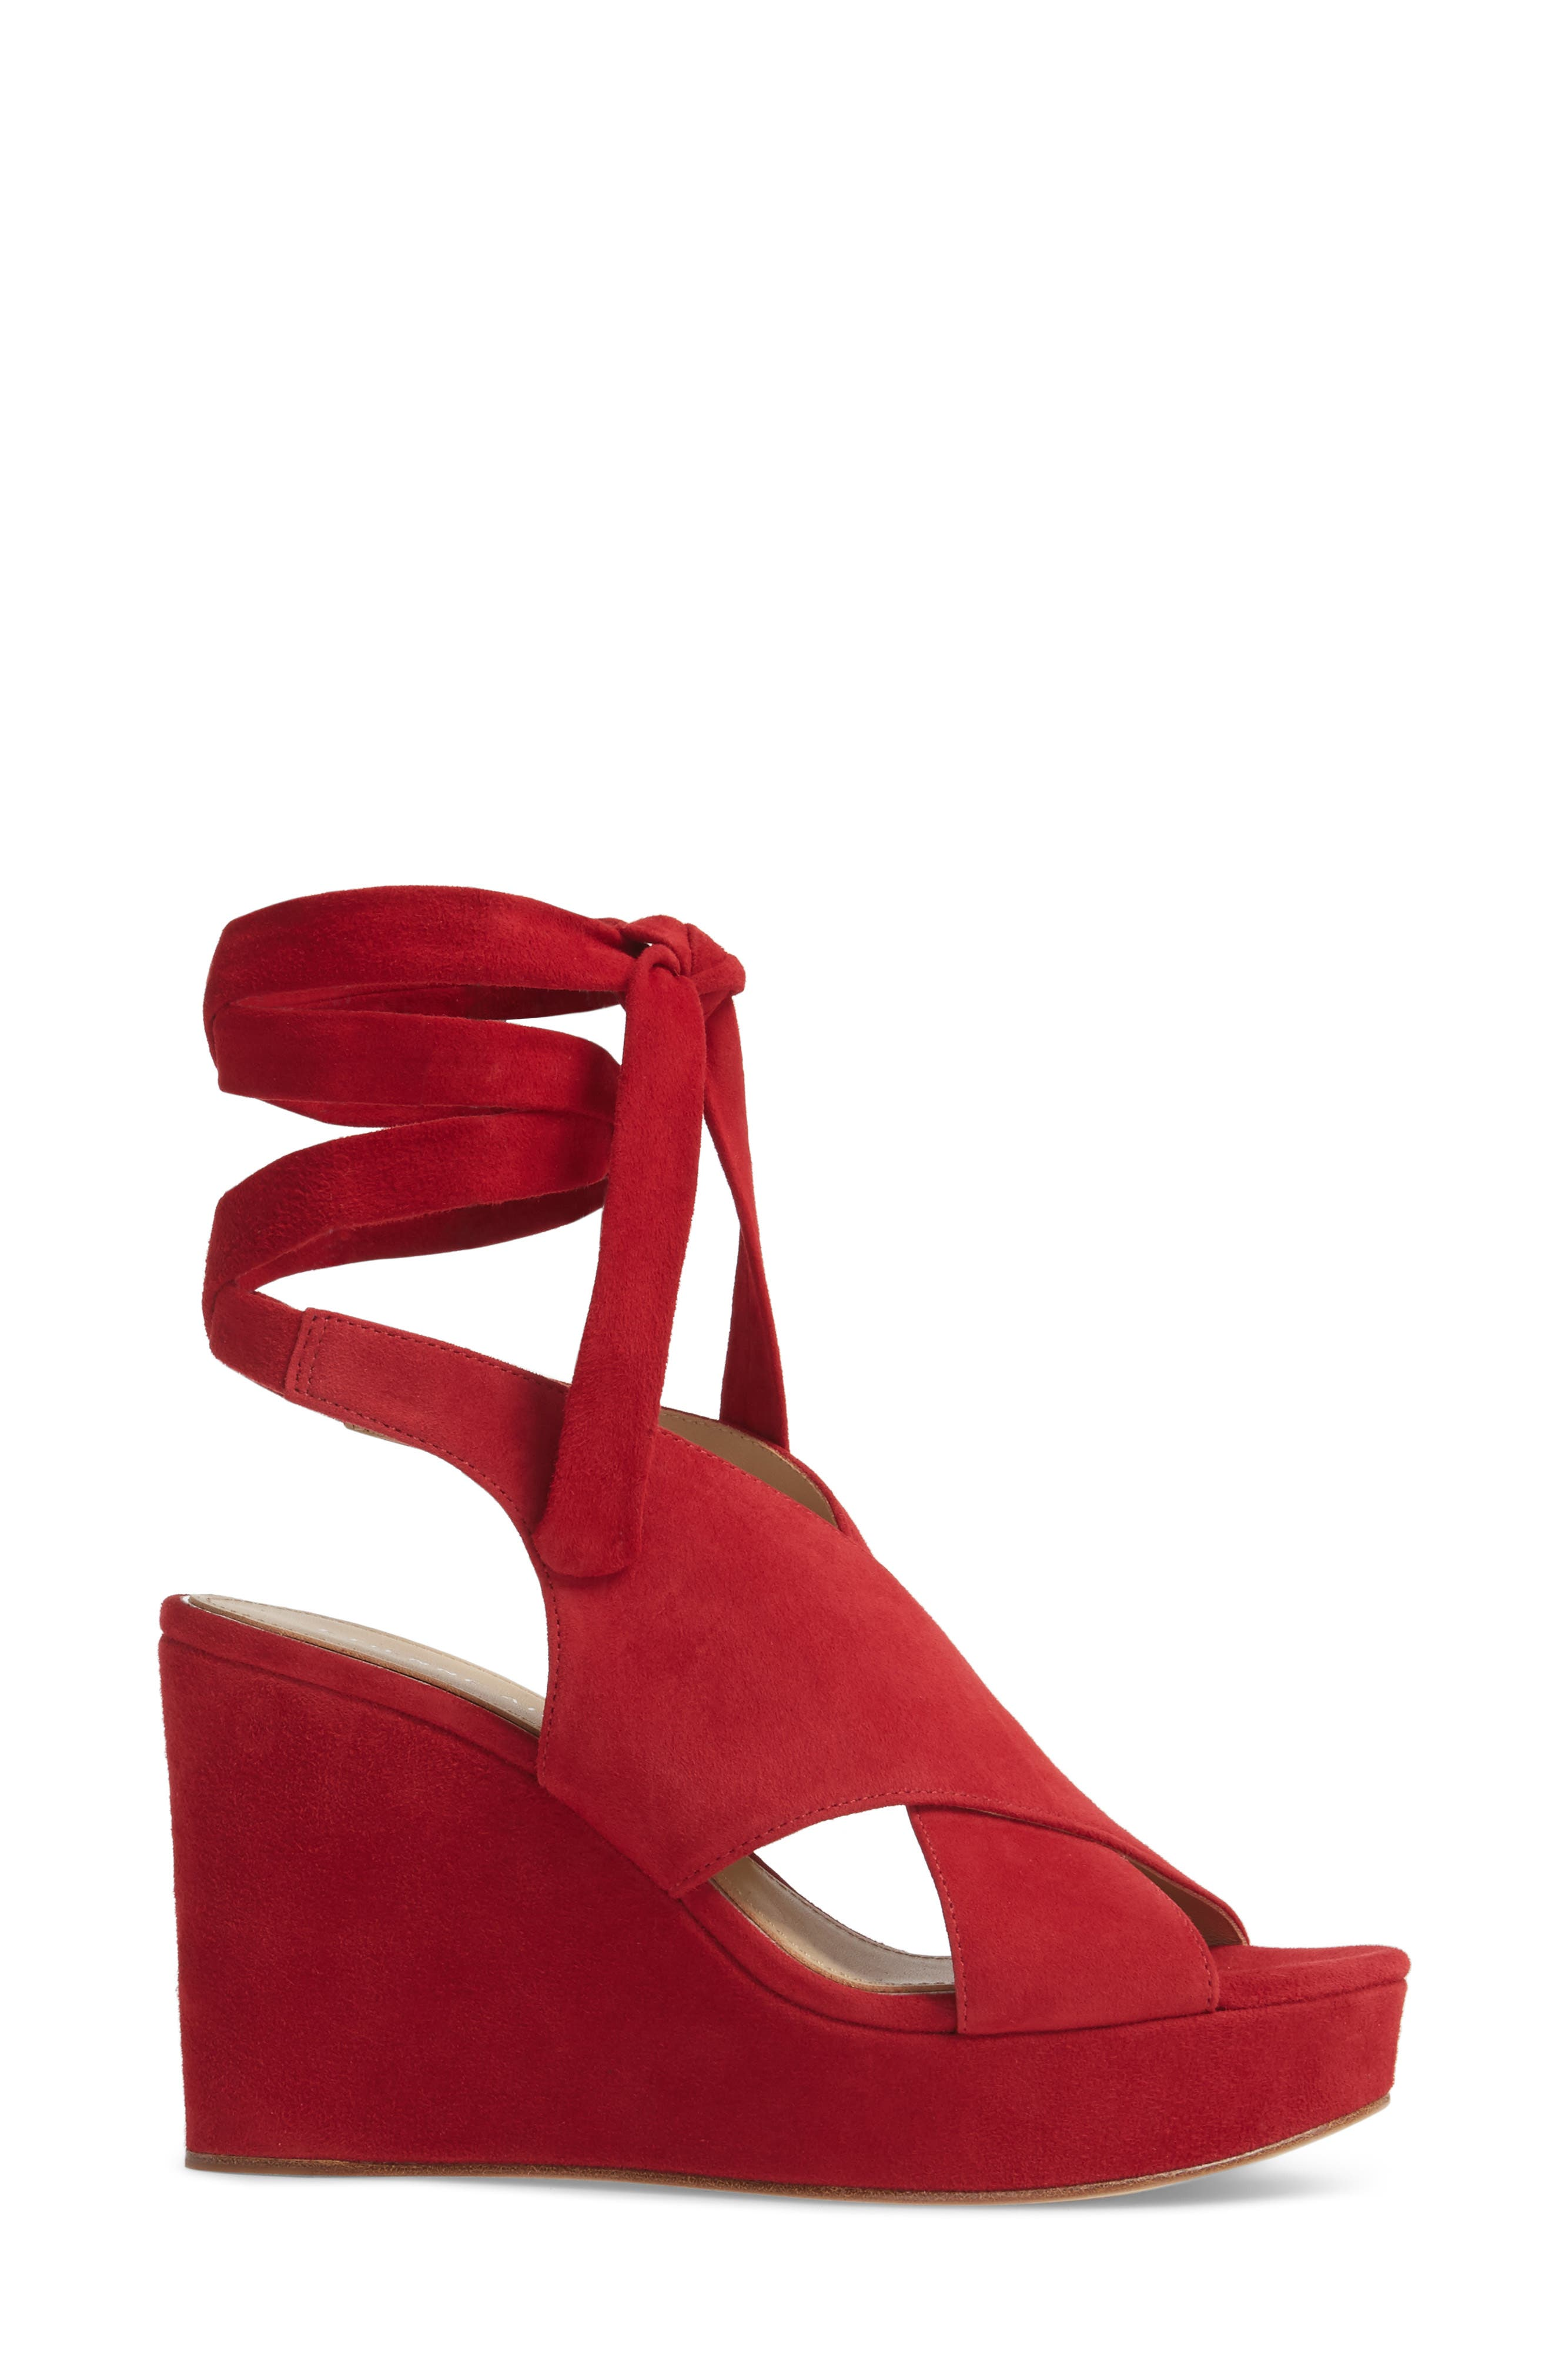 Dominica Platform Wedge Sandal,                             Alternate thumbnail 3, color,                             Cherry Suede